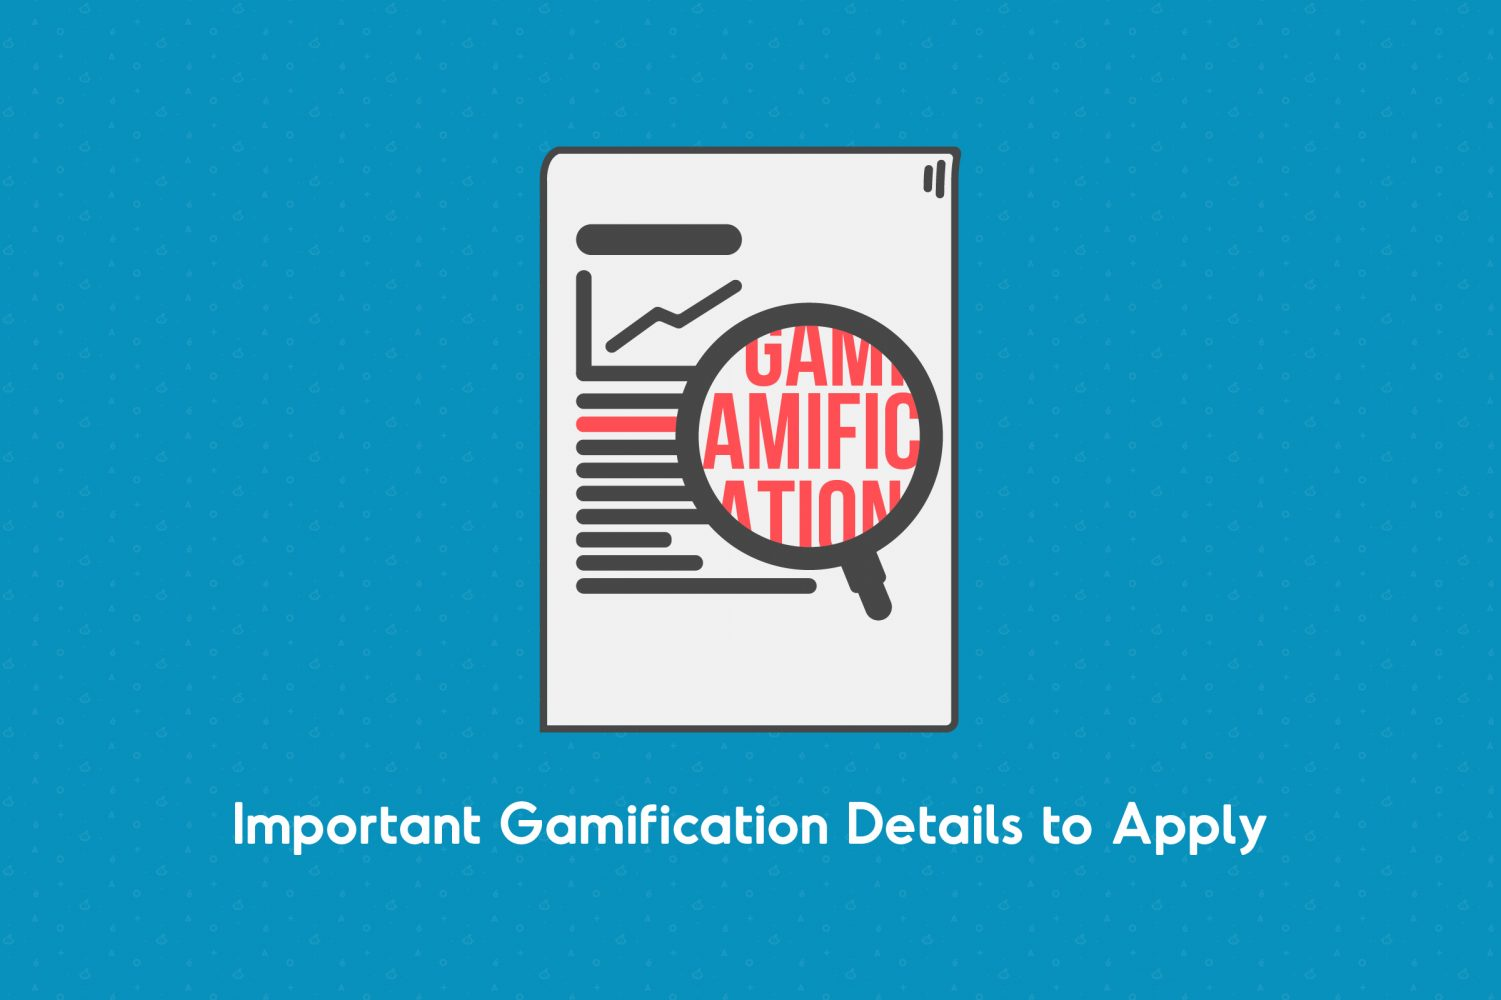 Things to Make Use When Applying Gamification